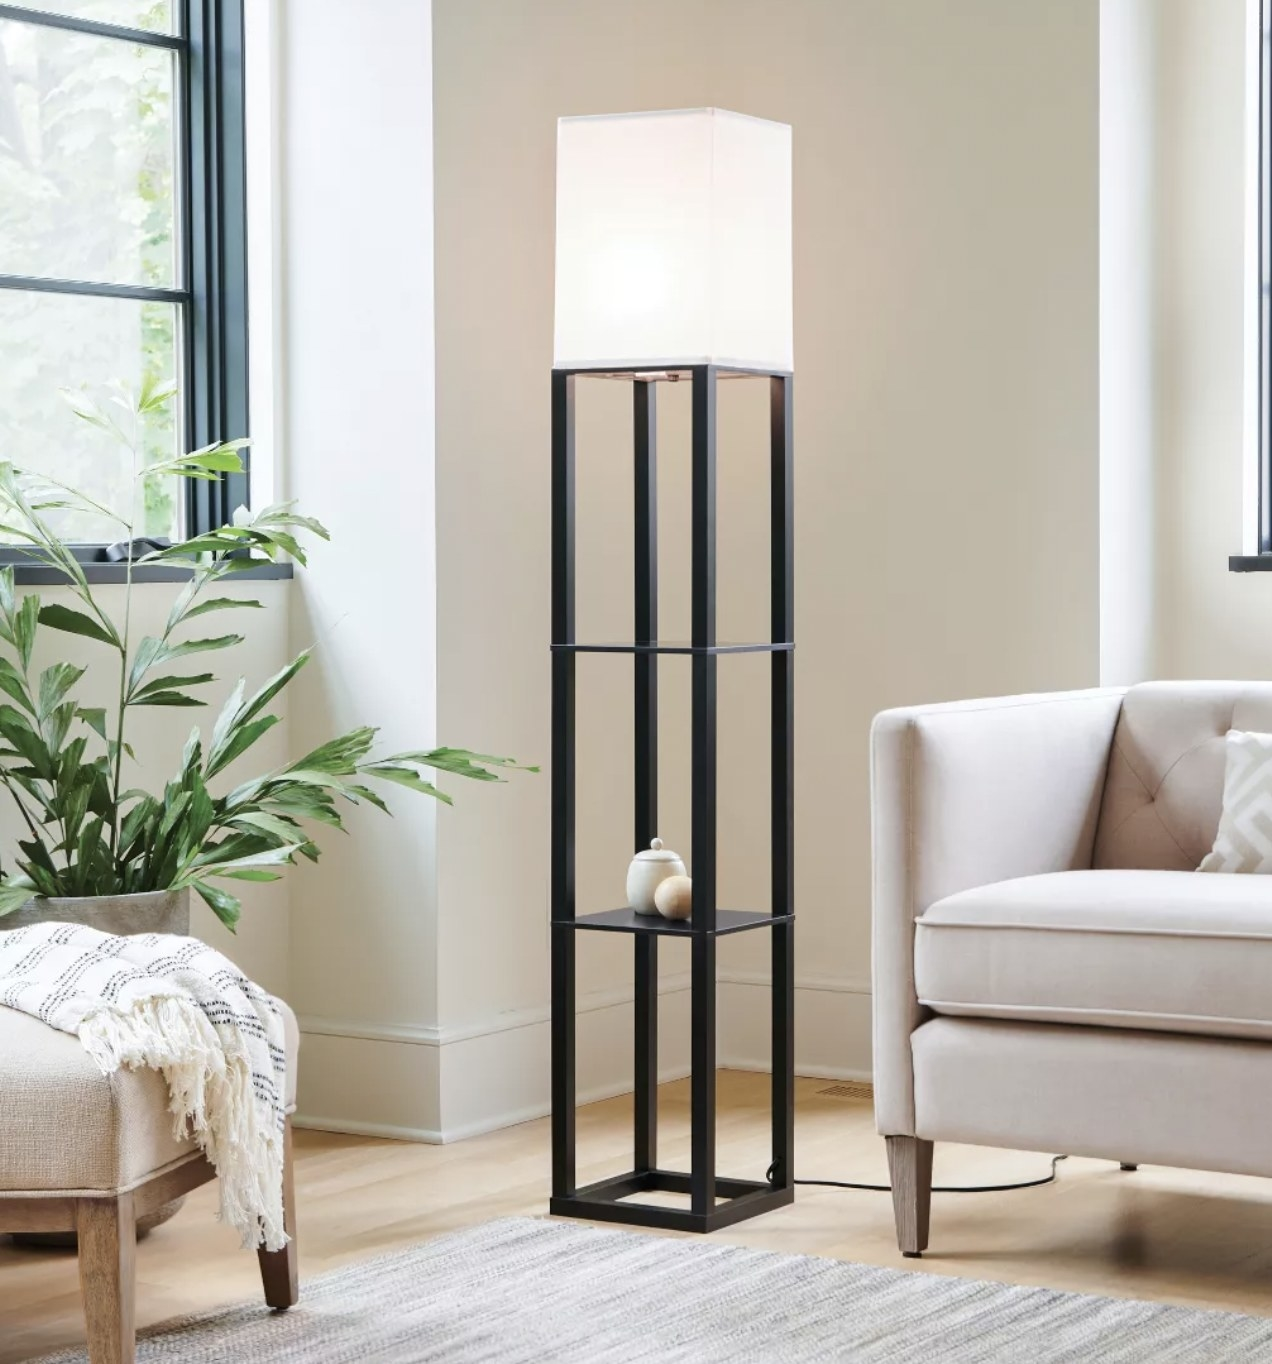 a floor lamp with a white cube lampshade and two black metal shelves